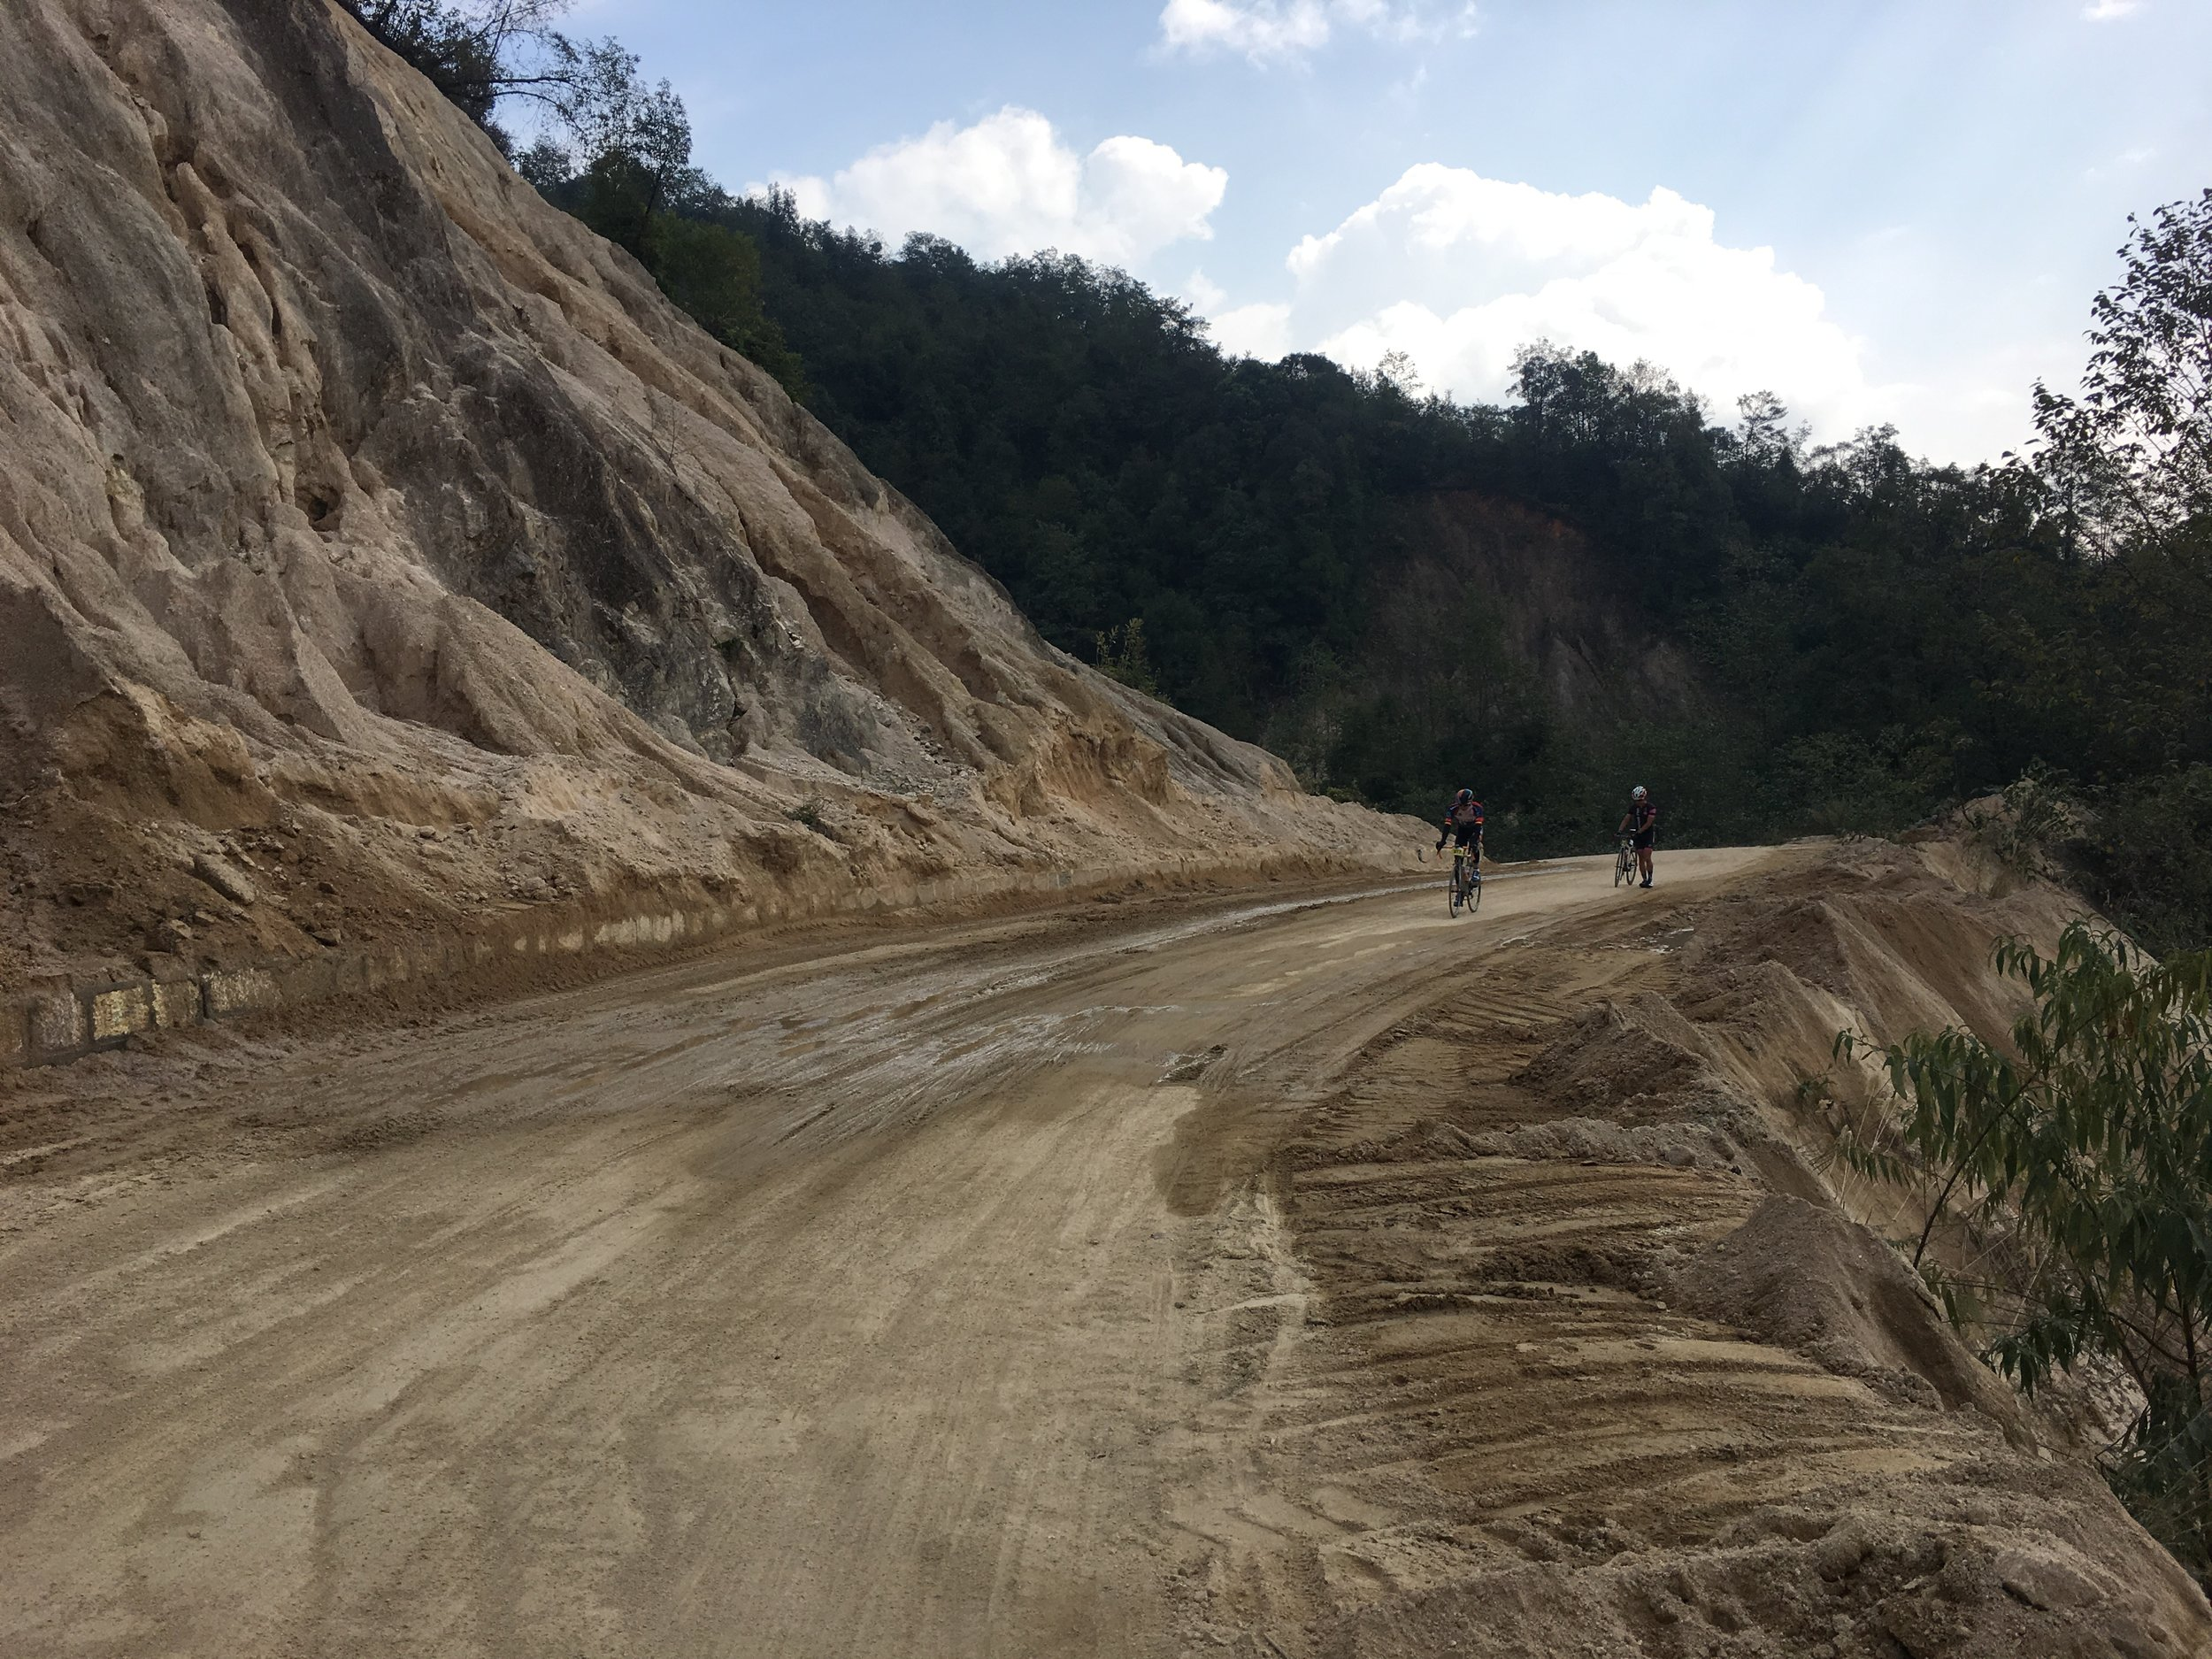 A bit of landslide happen recently but riders were still able to ride through.